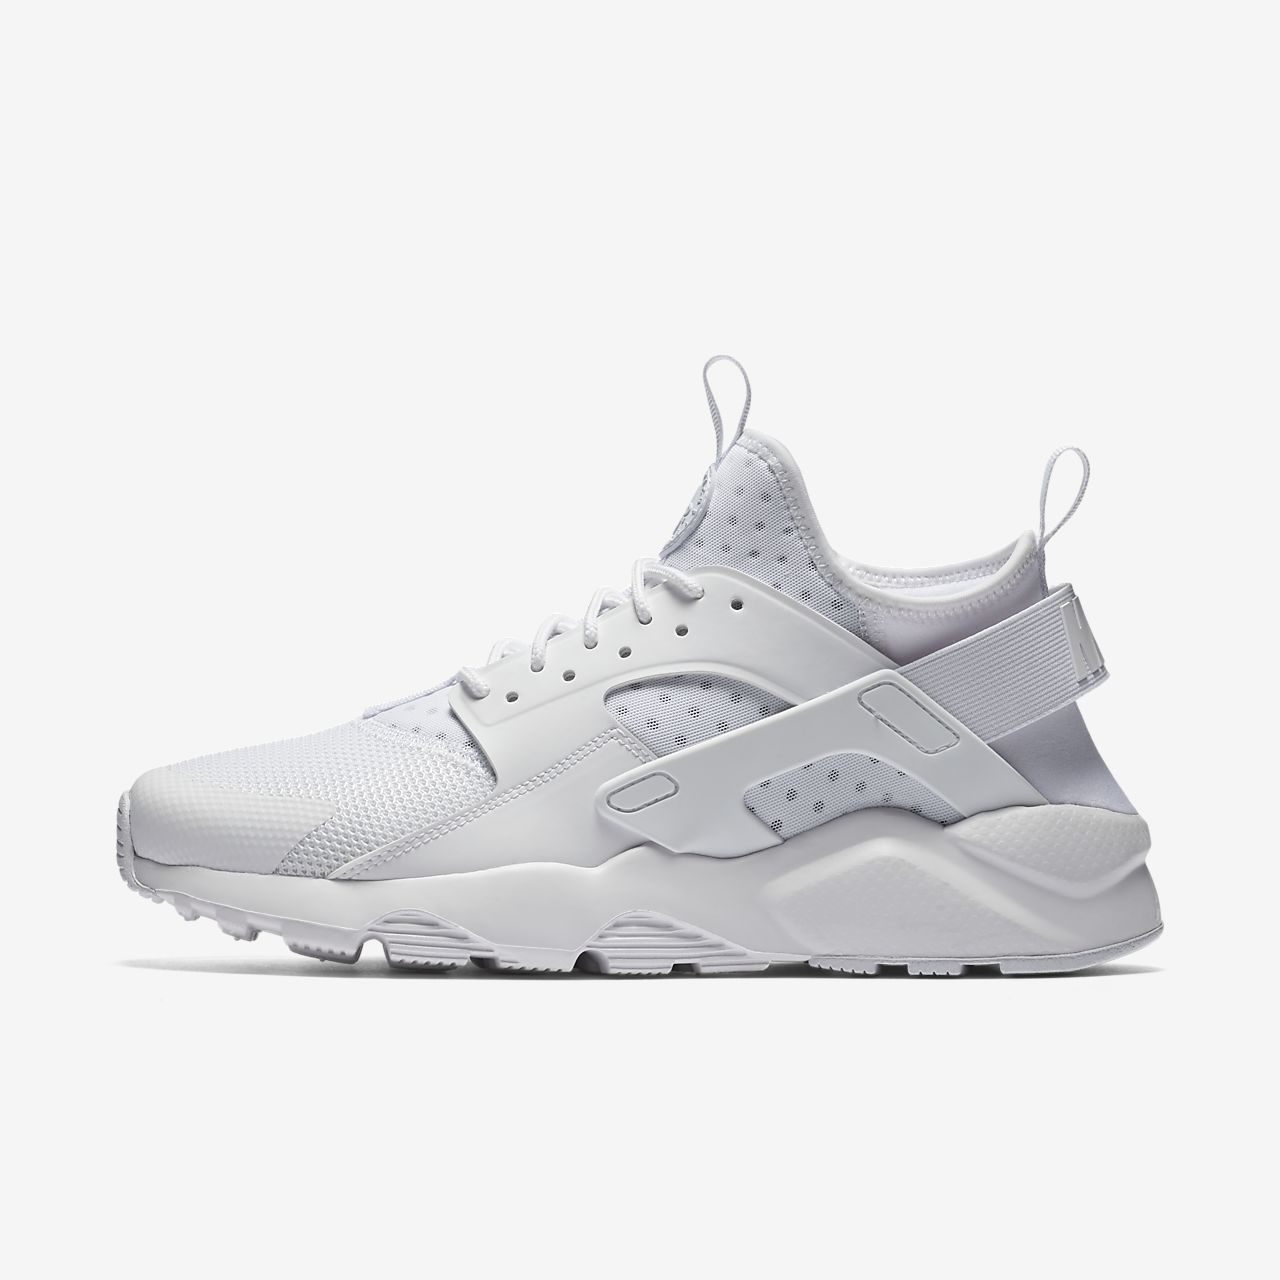 hot sale online 981b7 6e10a ... Nike Air Huarache Ultra Men s Shoe